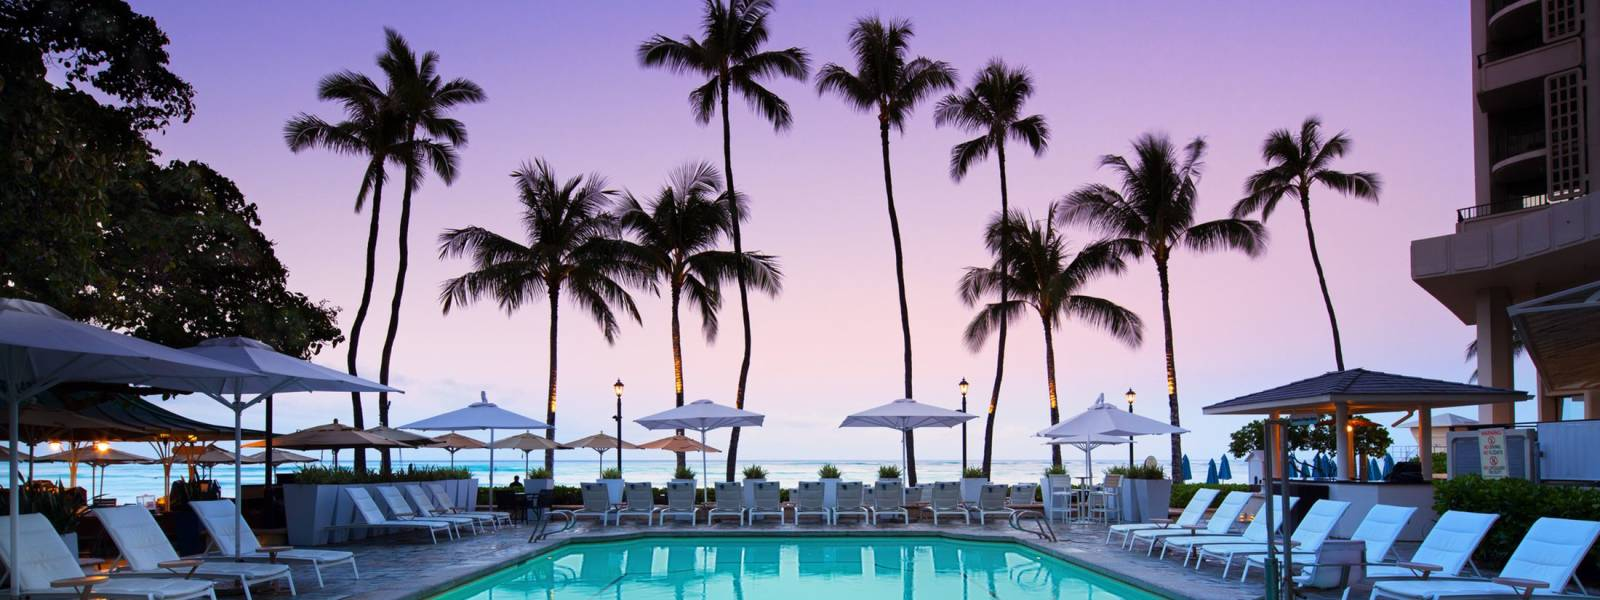 a group of palm trees next to a swimming pool